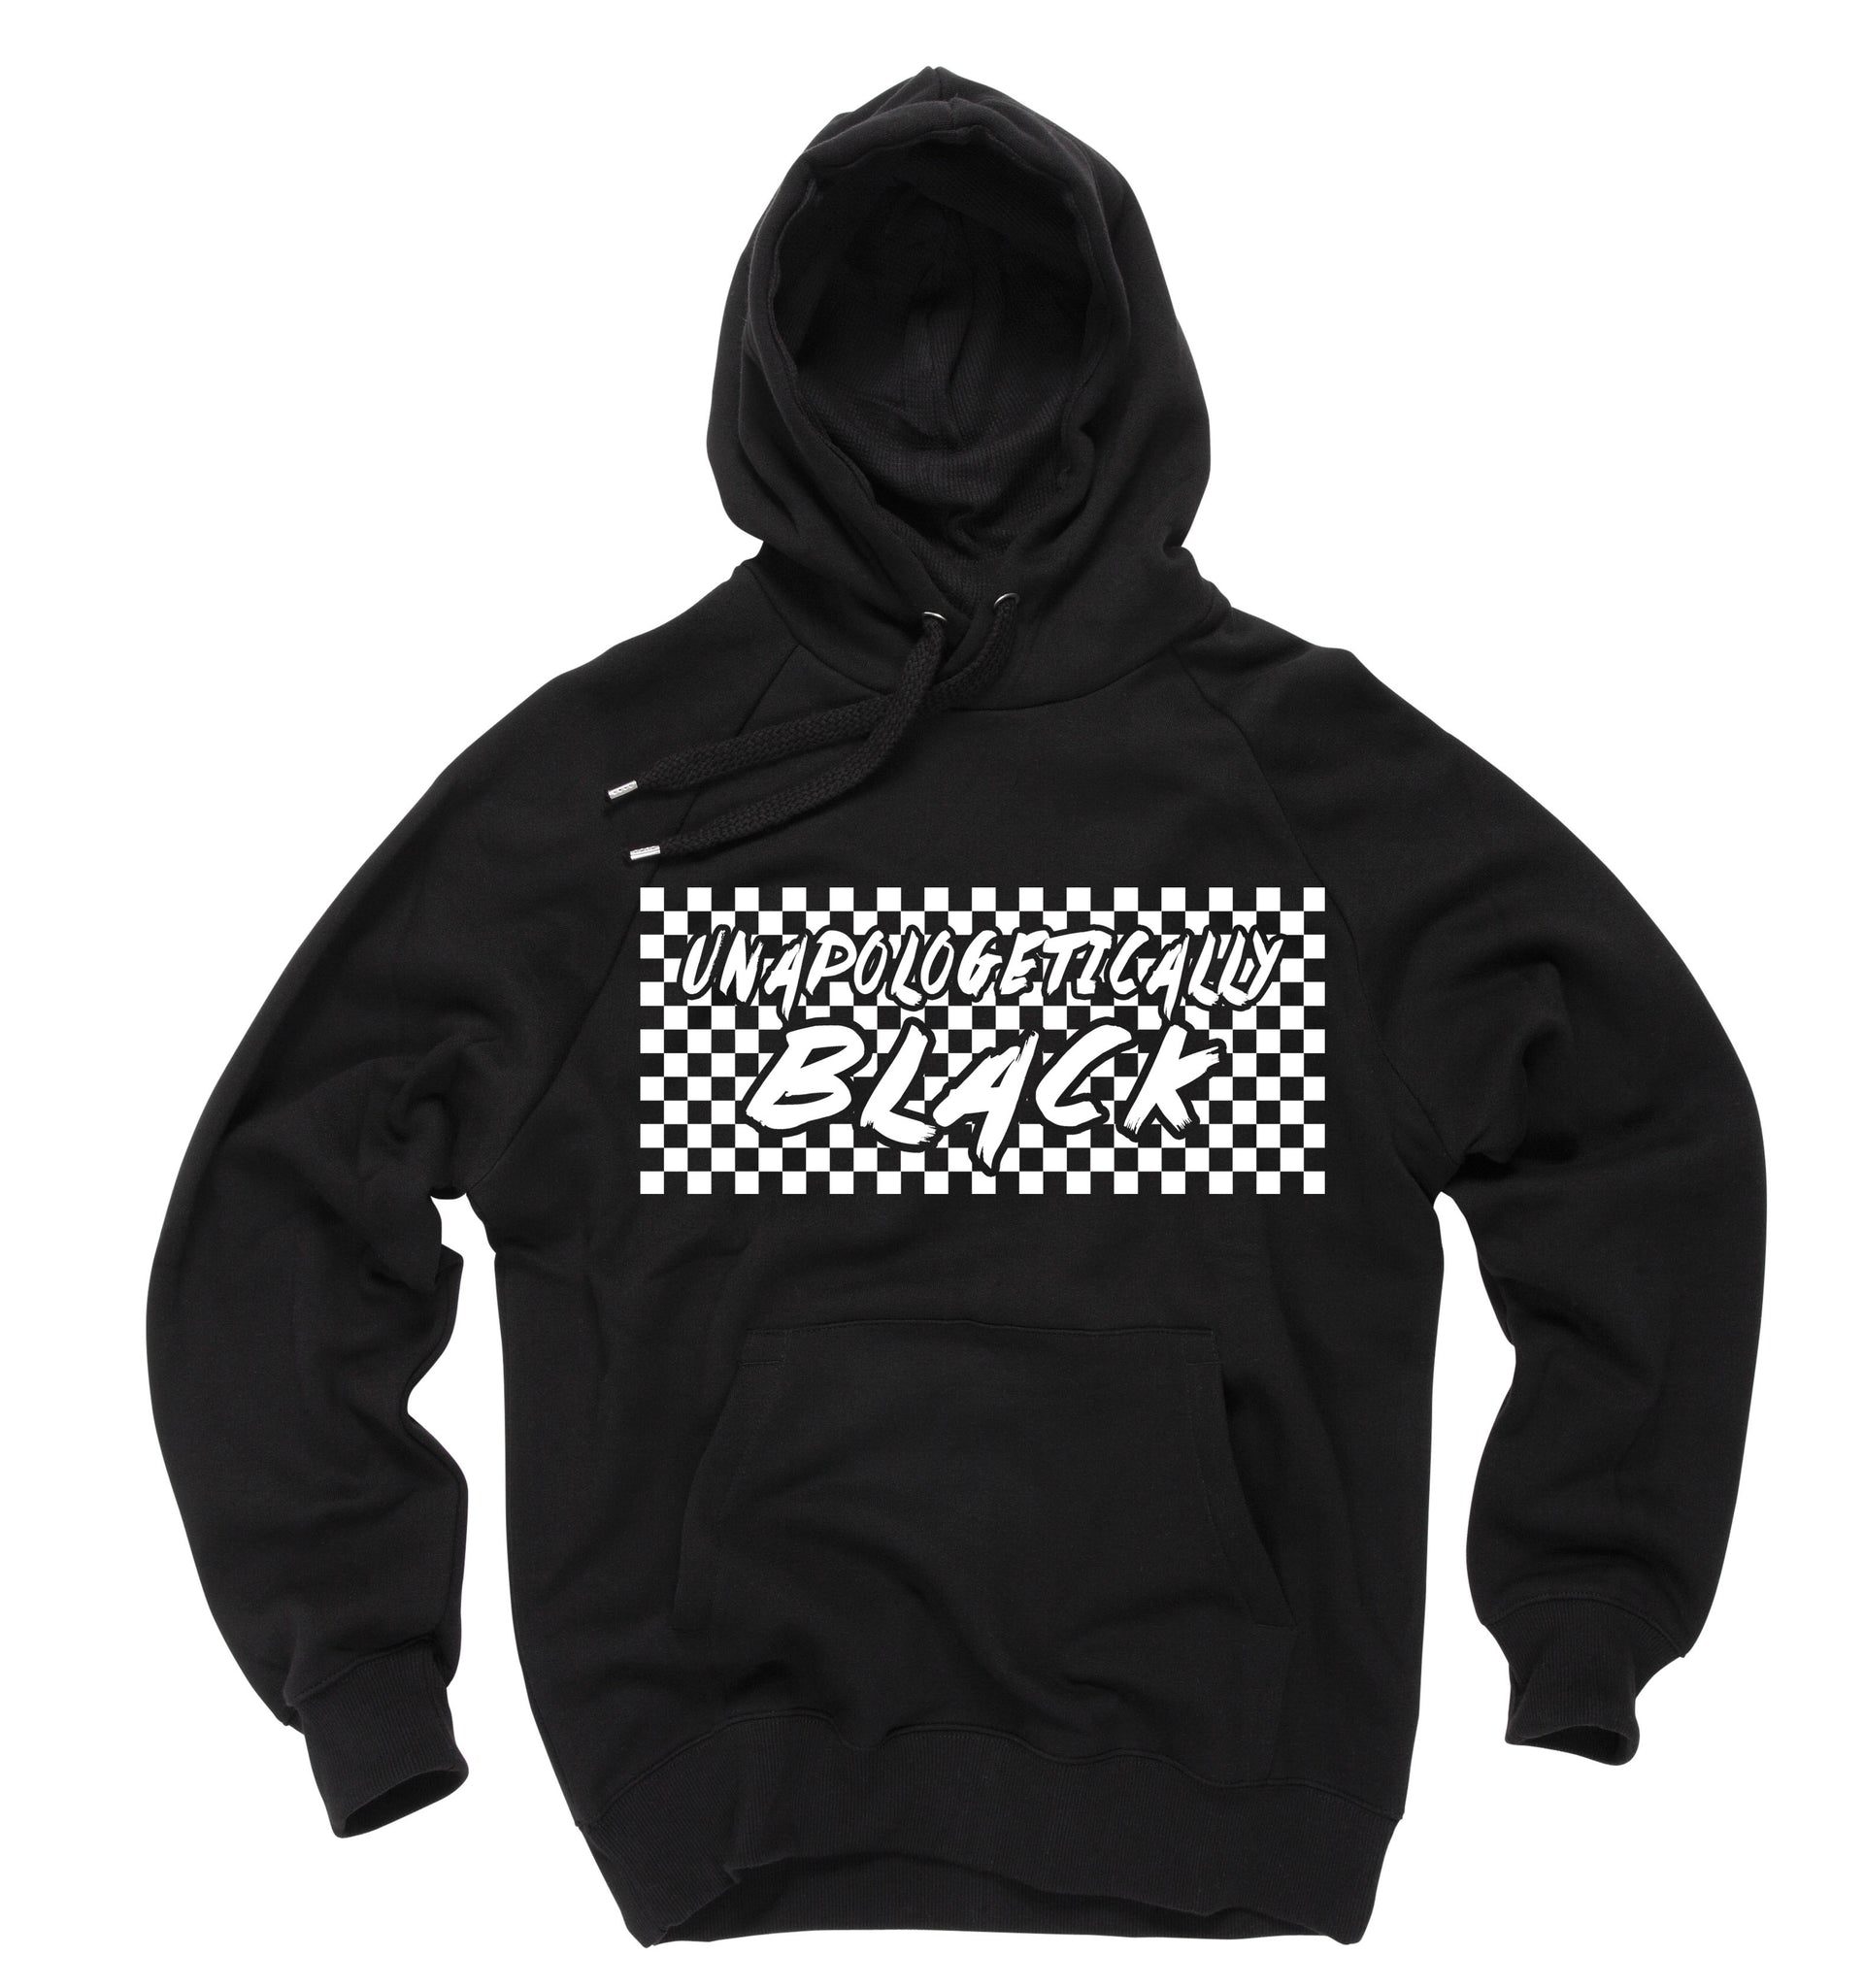 Unapologetically Black Hoodie - Black10.com